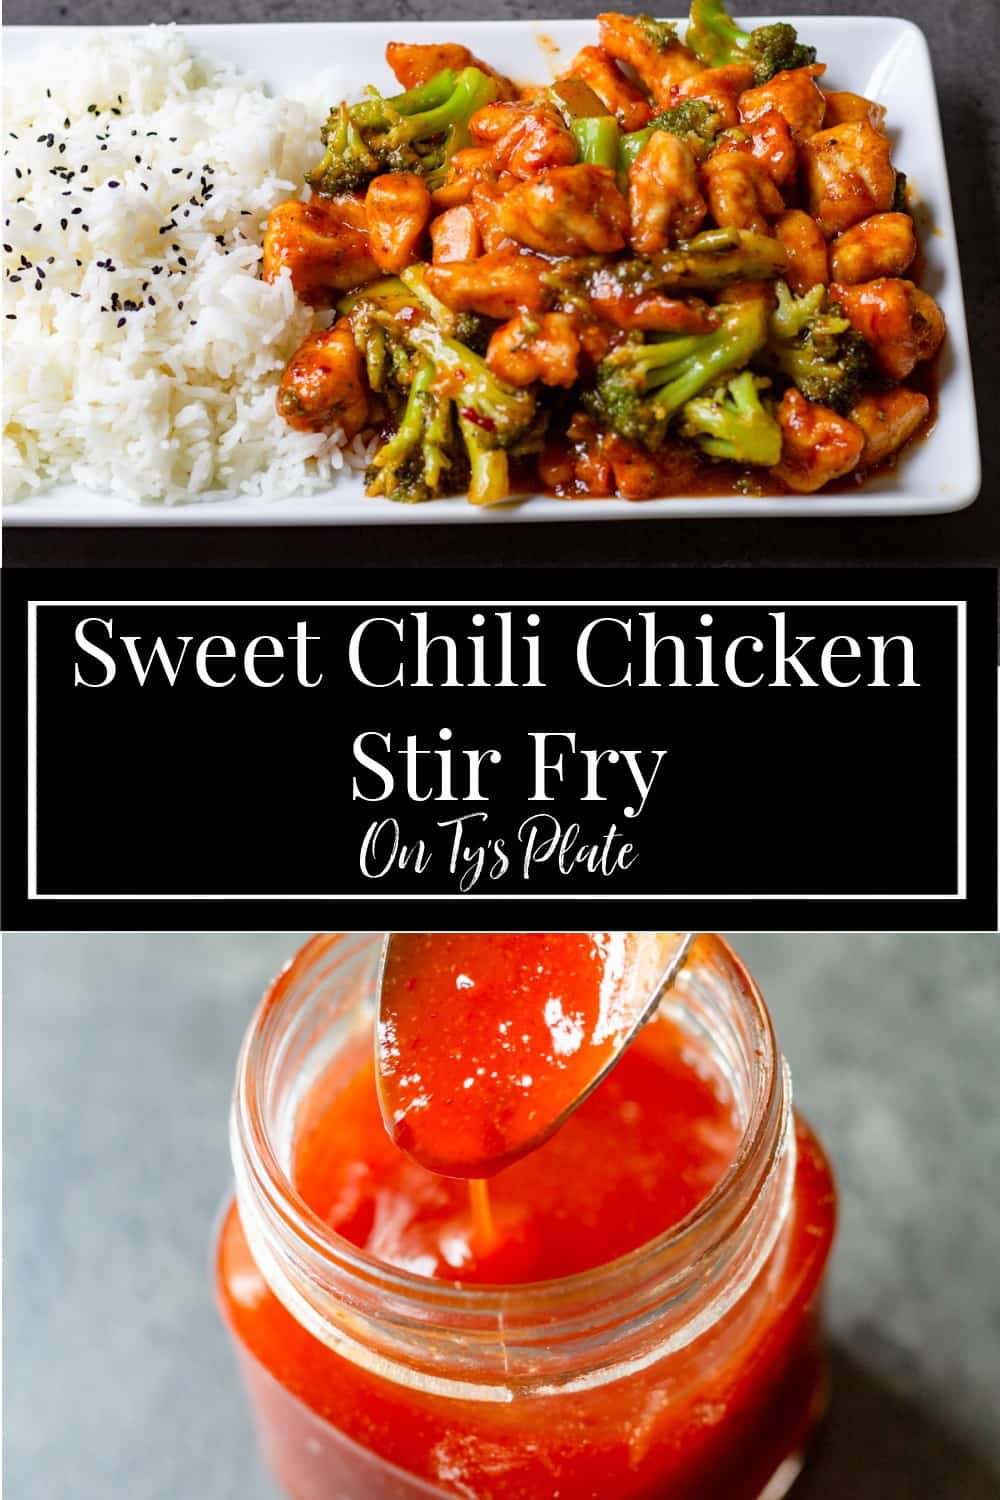 Sweet Chili Chicken Stir Fry